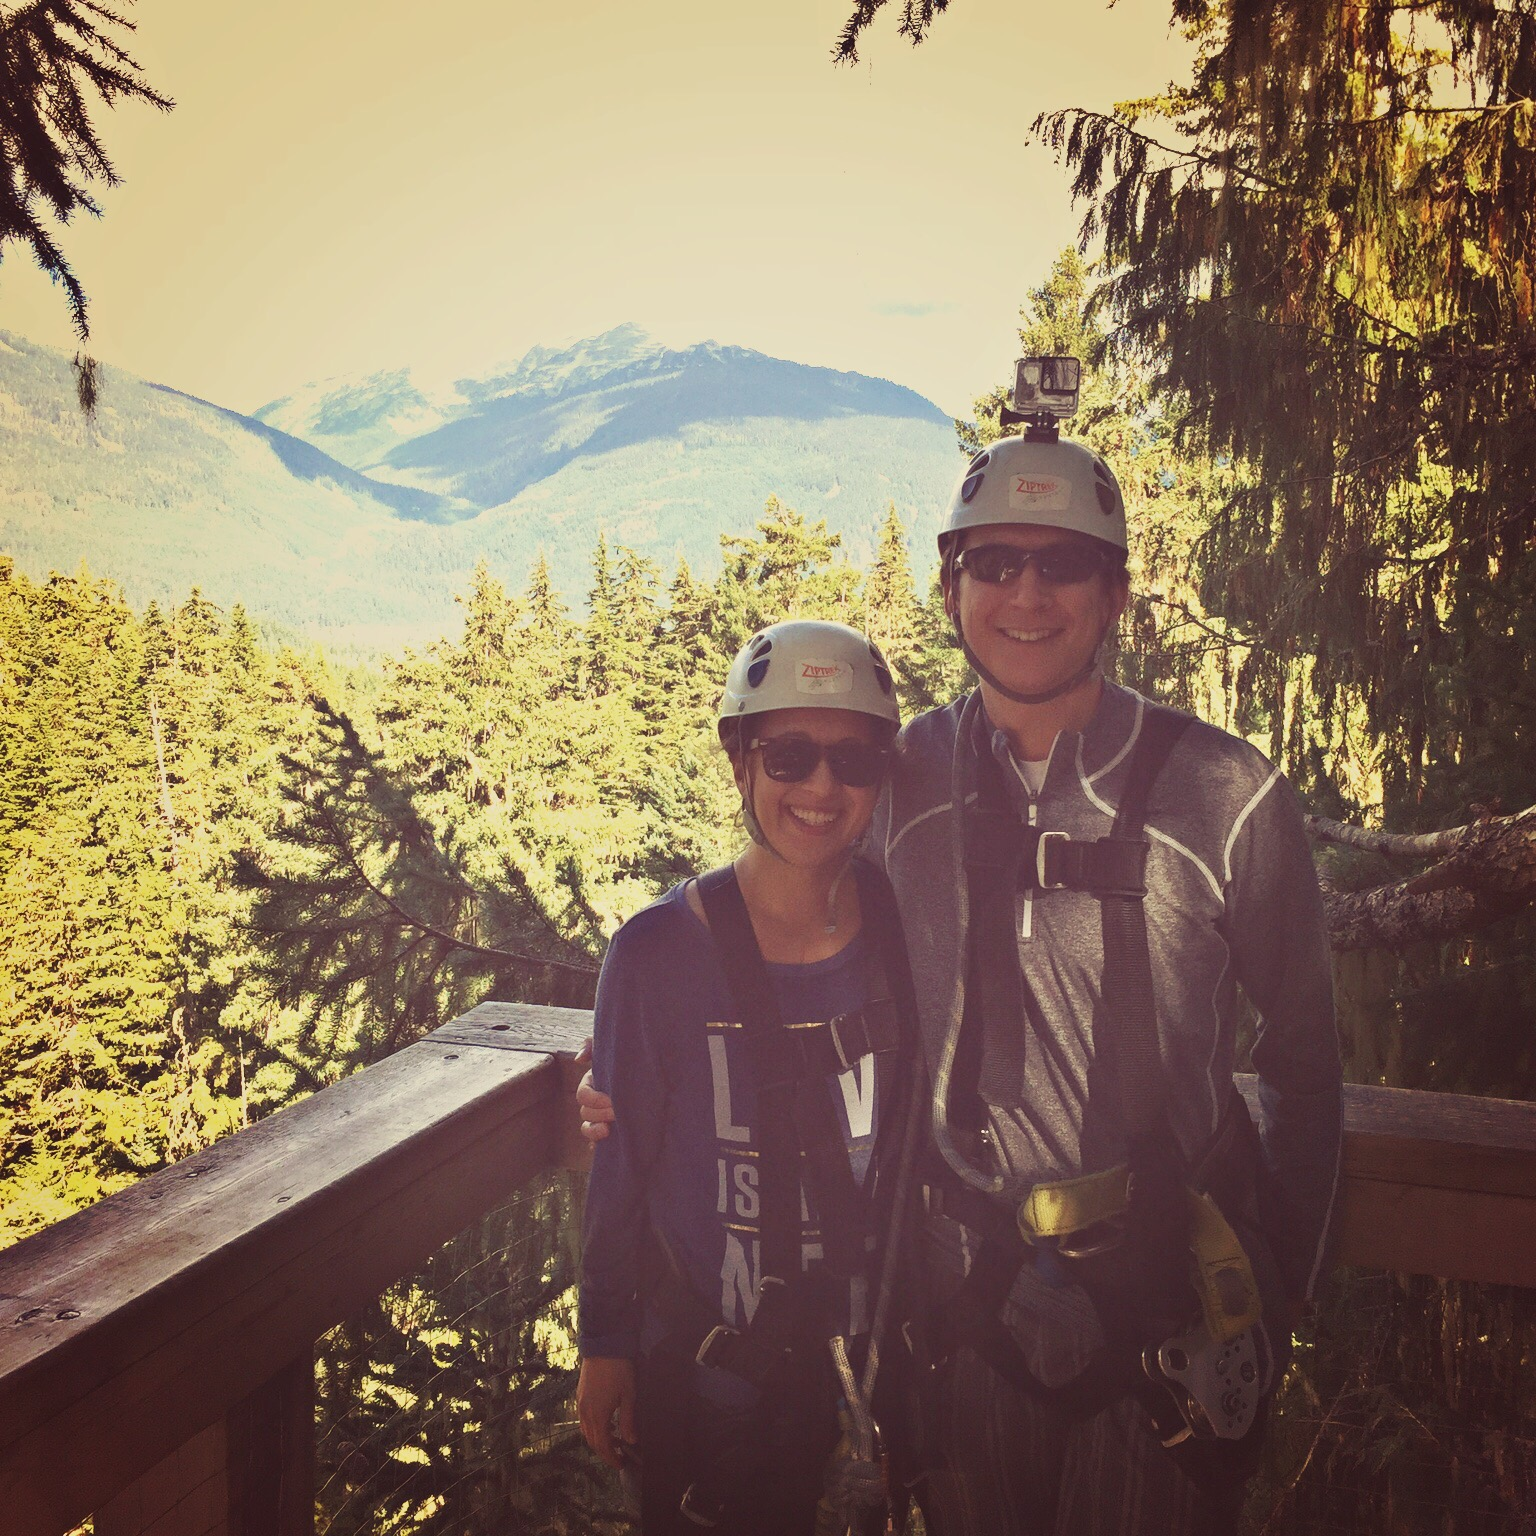 ziplining at whistler for anniversary